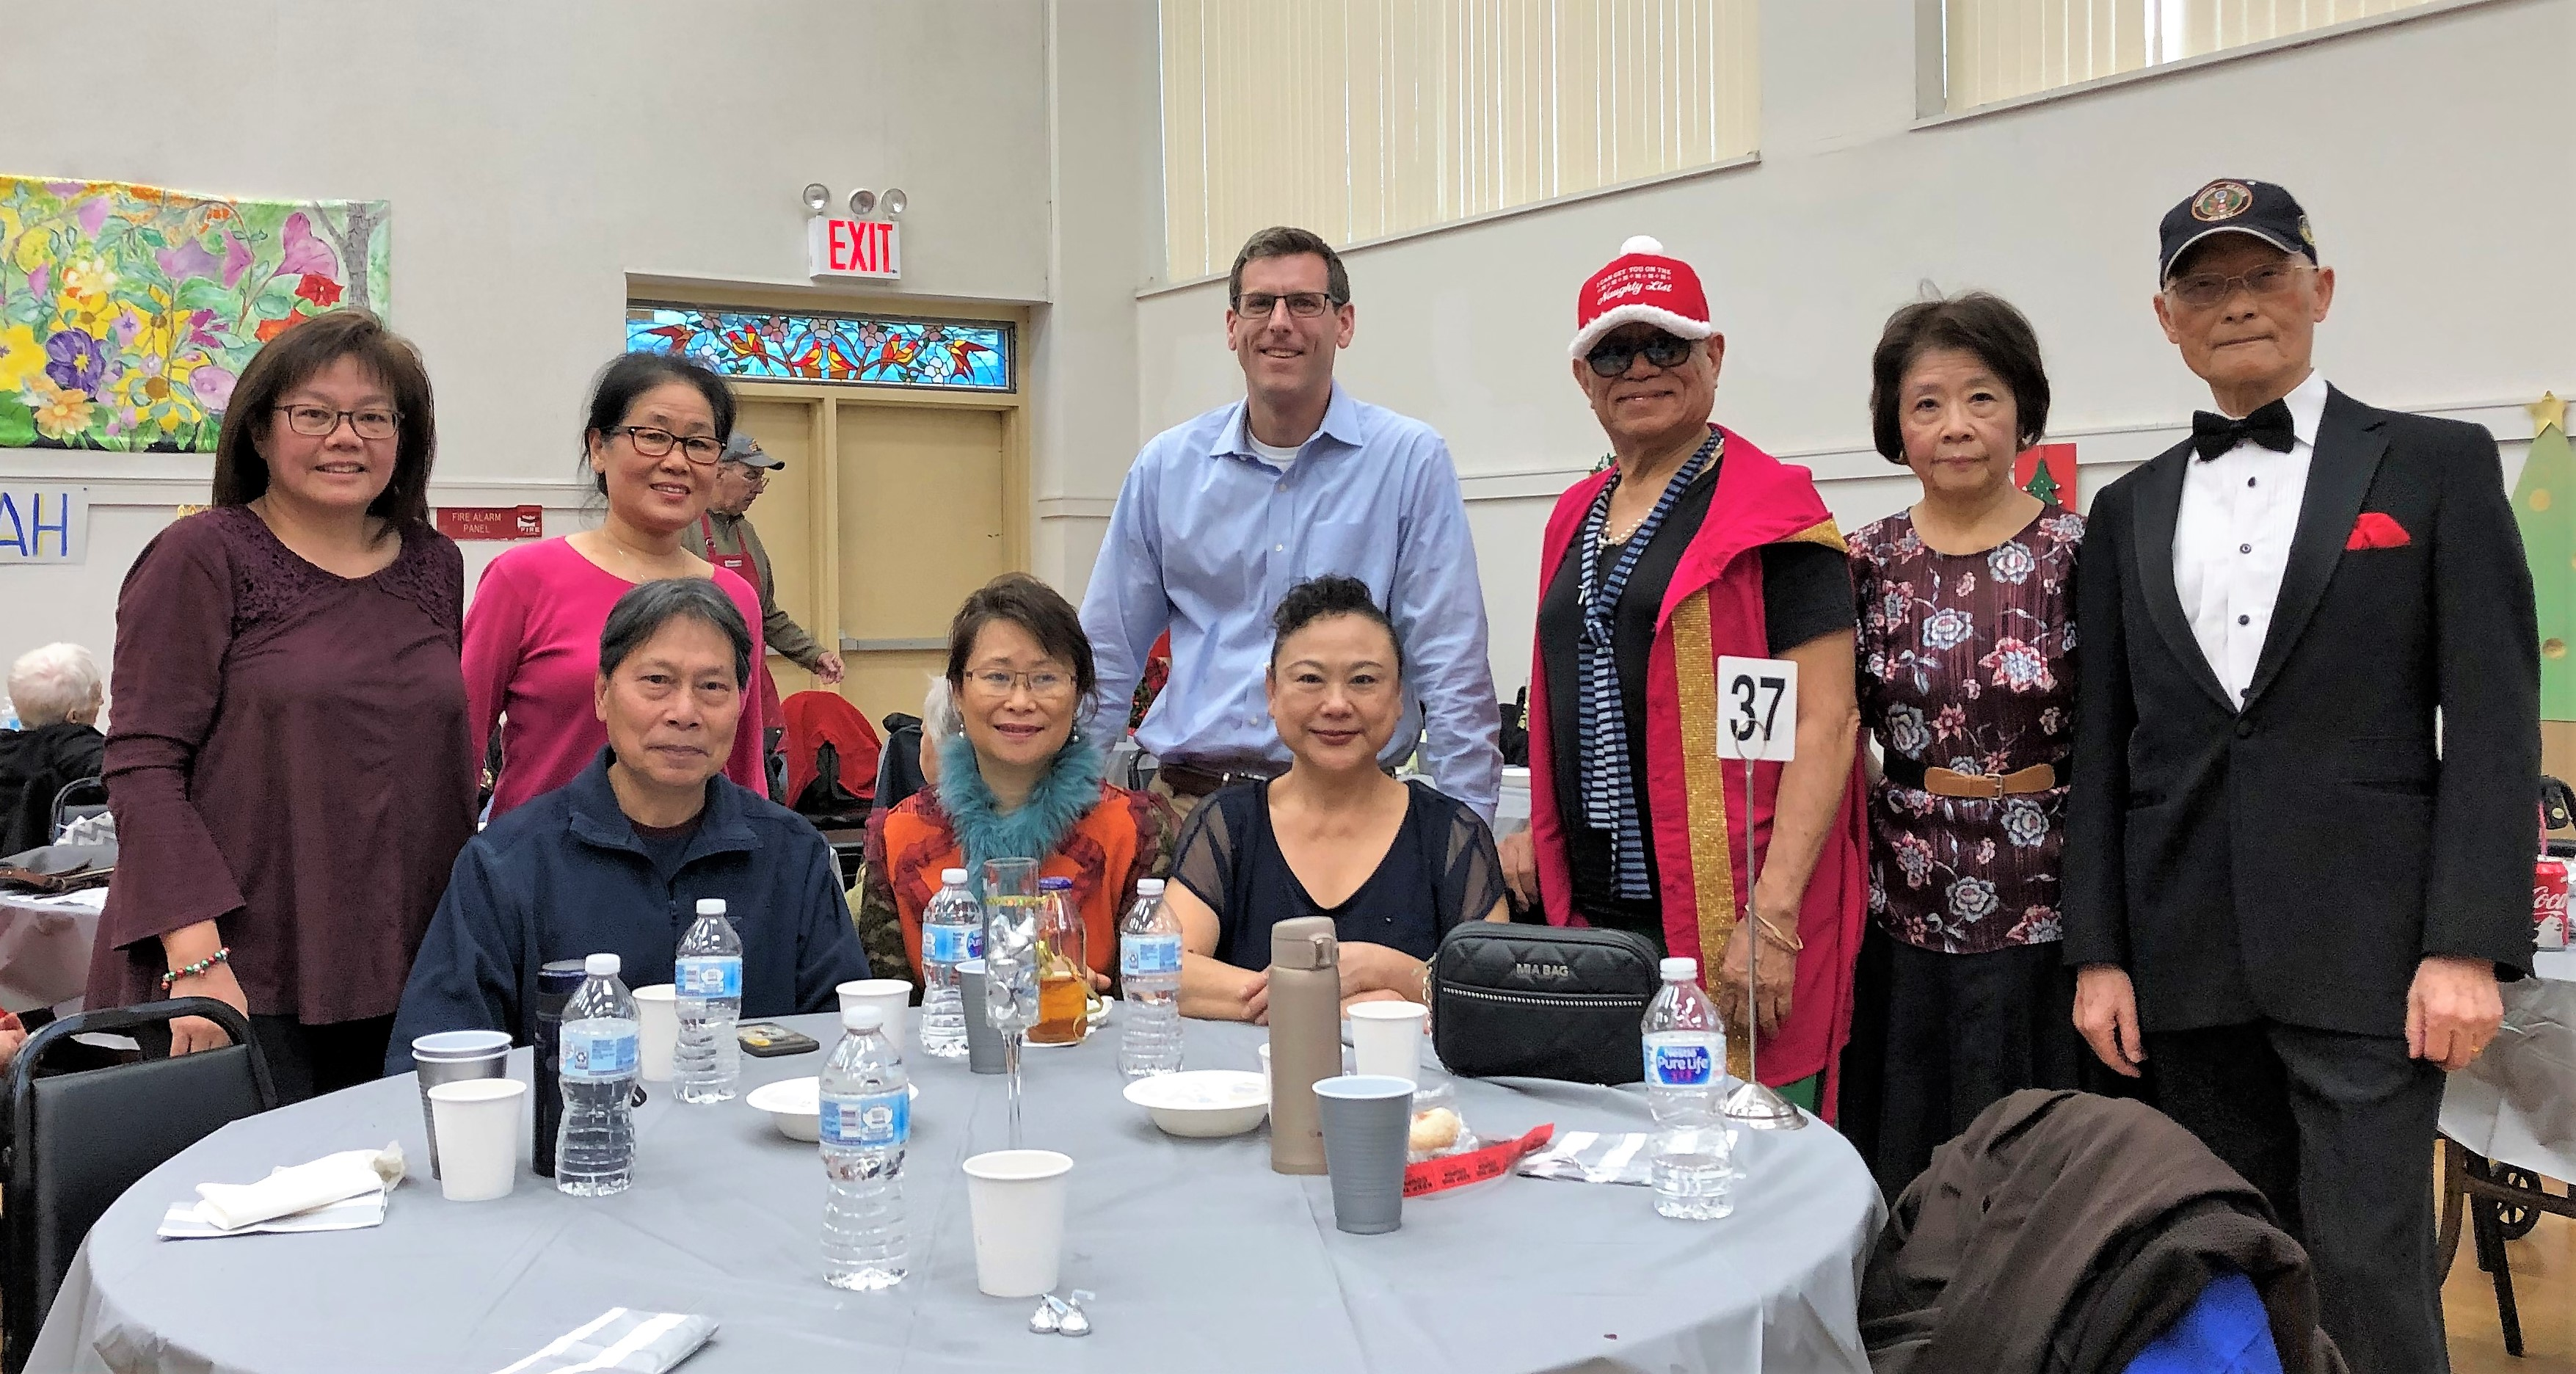 On December 16, 2019, Assemblyman Braunstein attended the Selfhelp Clearview Senior Center Holiday Party.